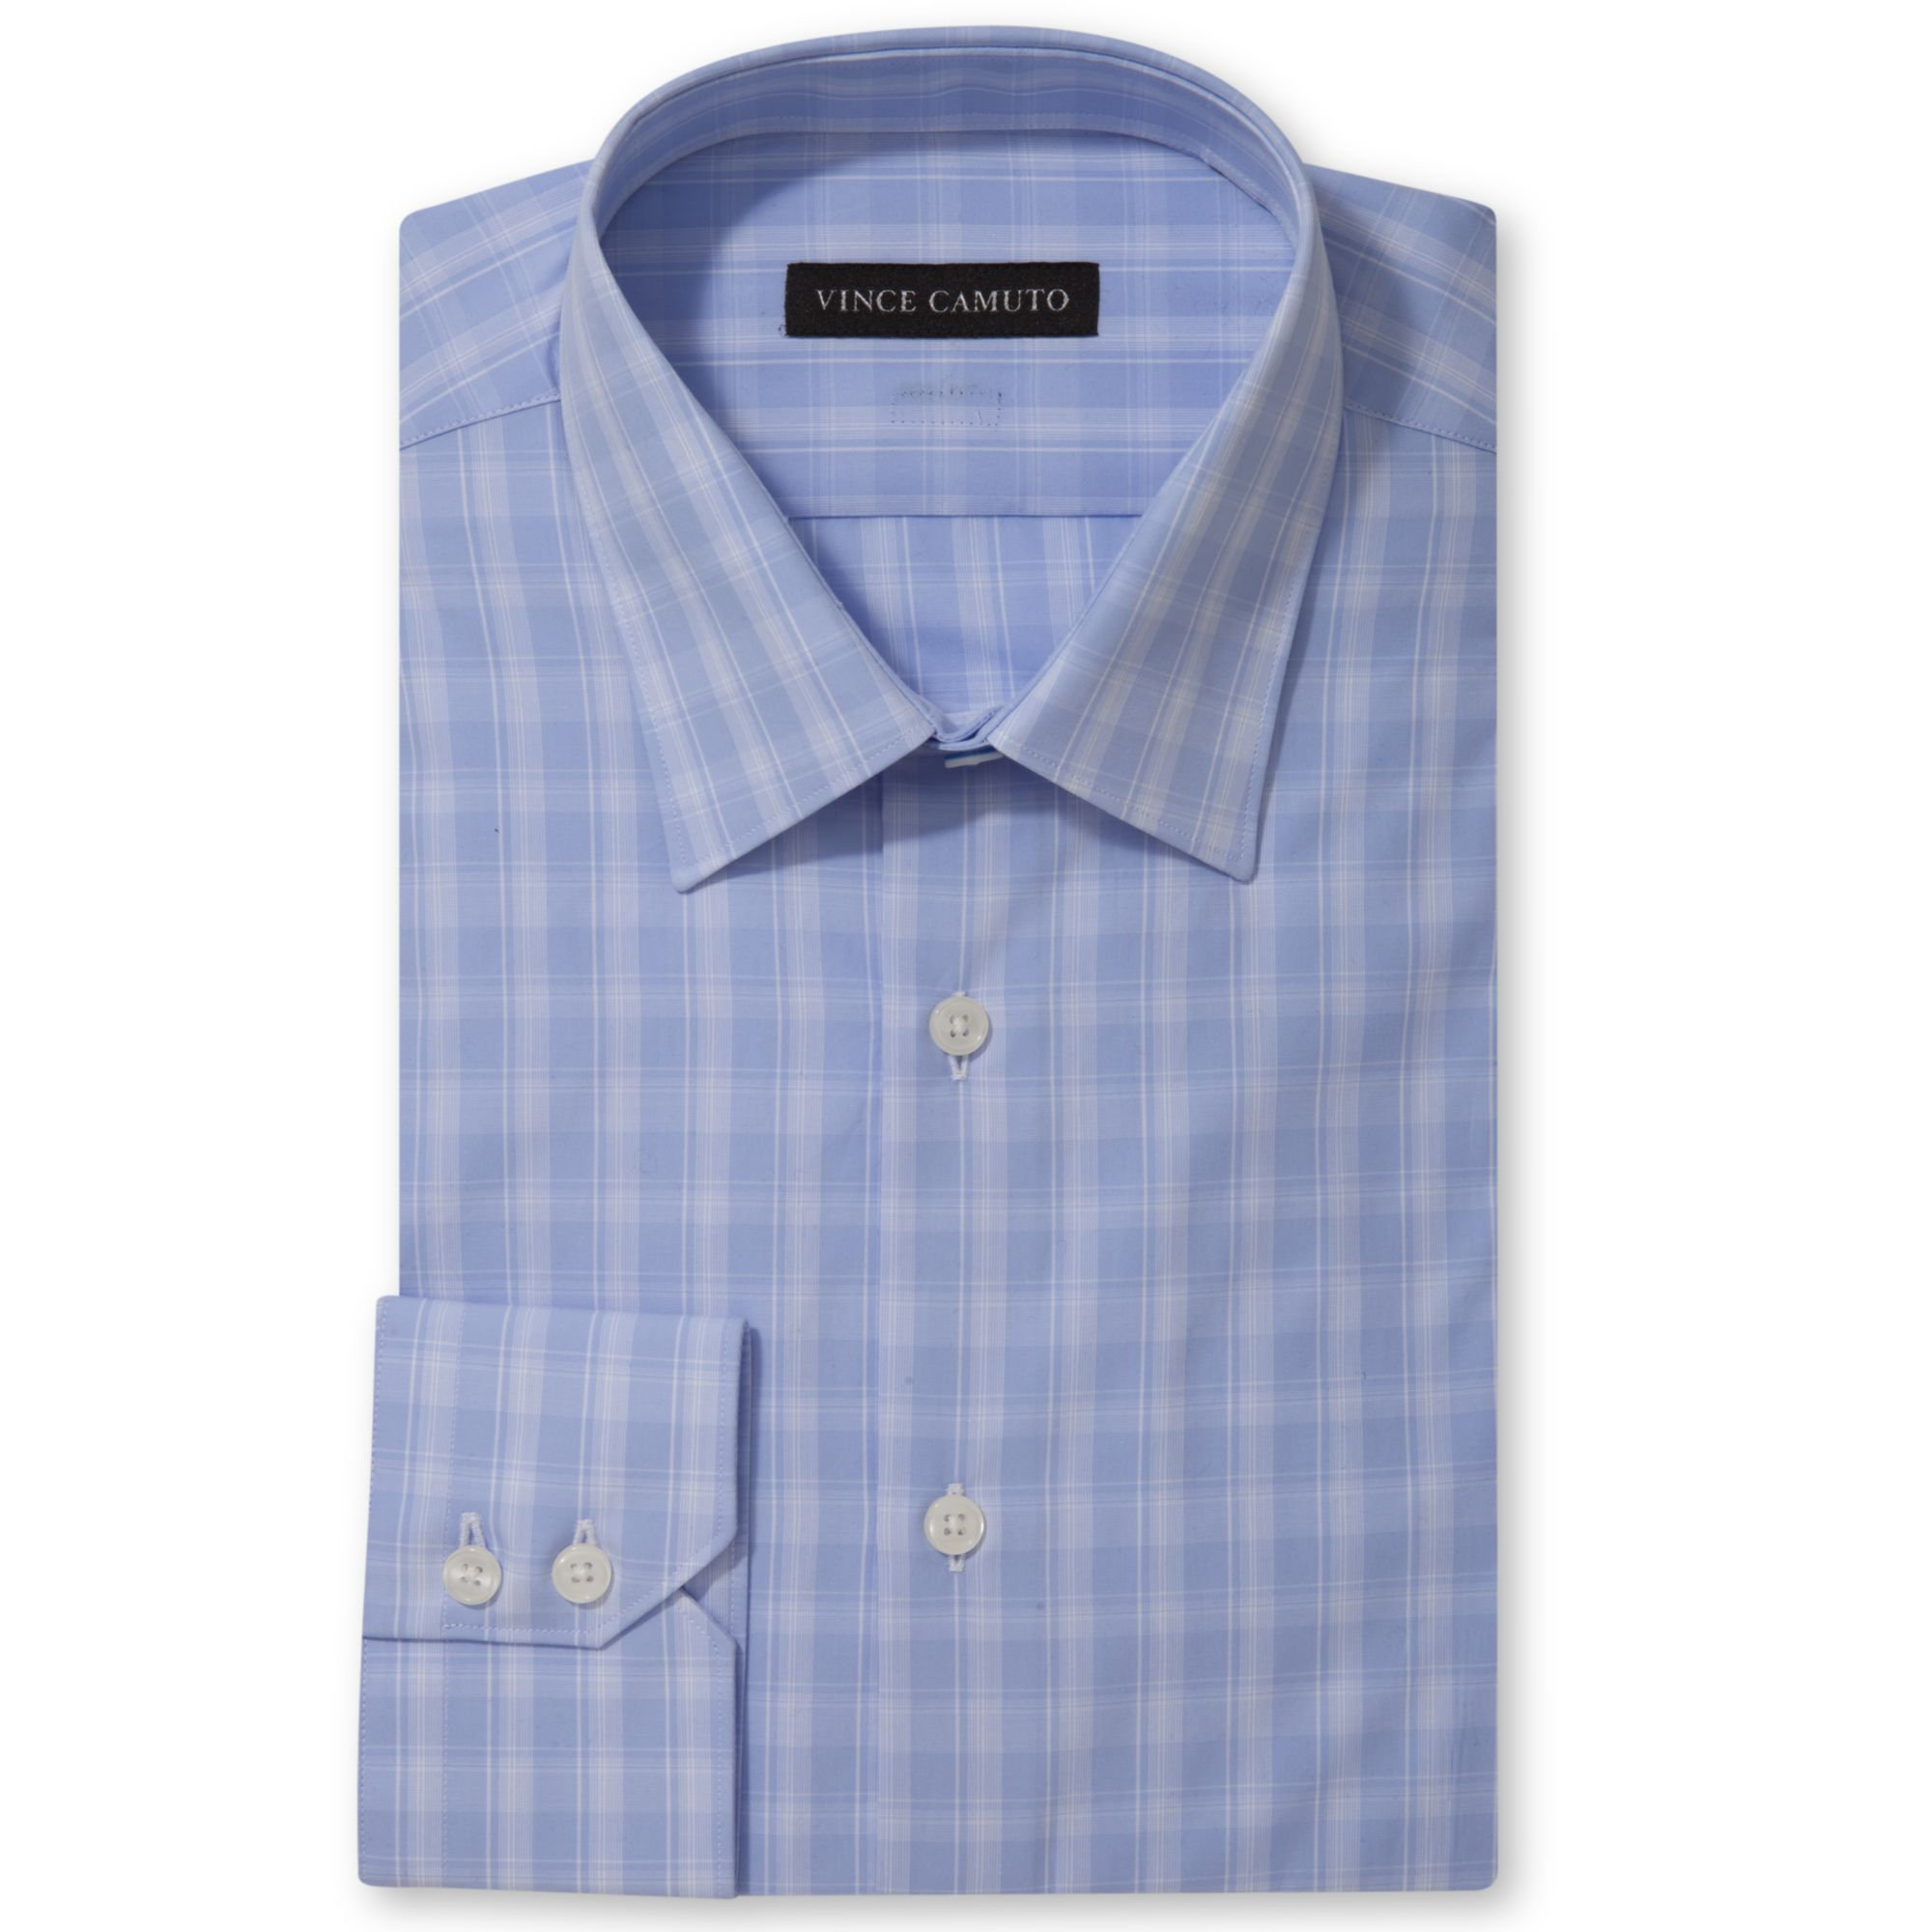 Vince camuto modern fit blue and white check dress shirt for Modern fit dress shirt